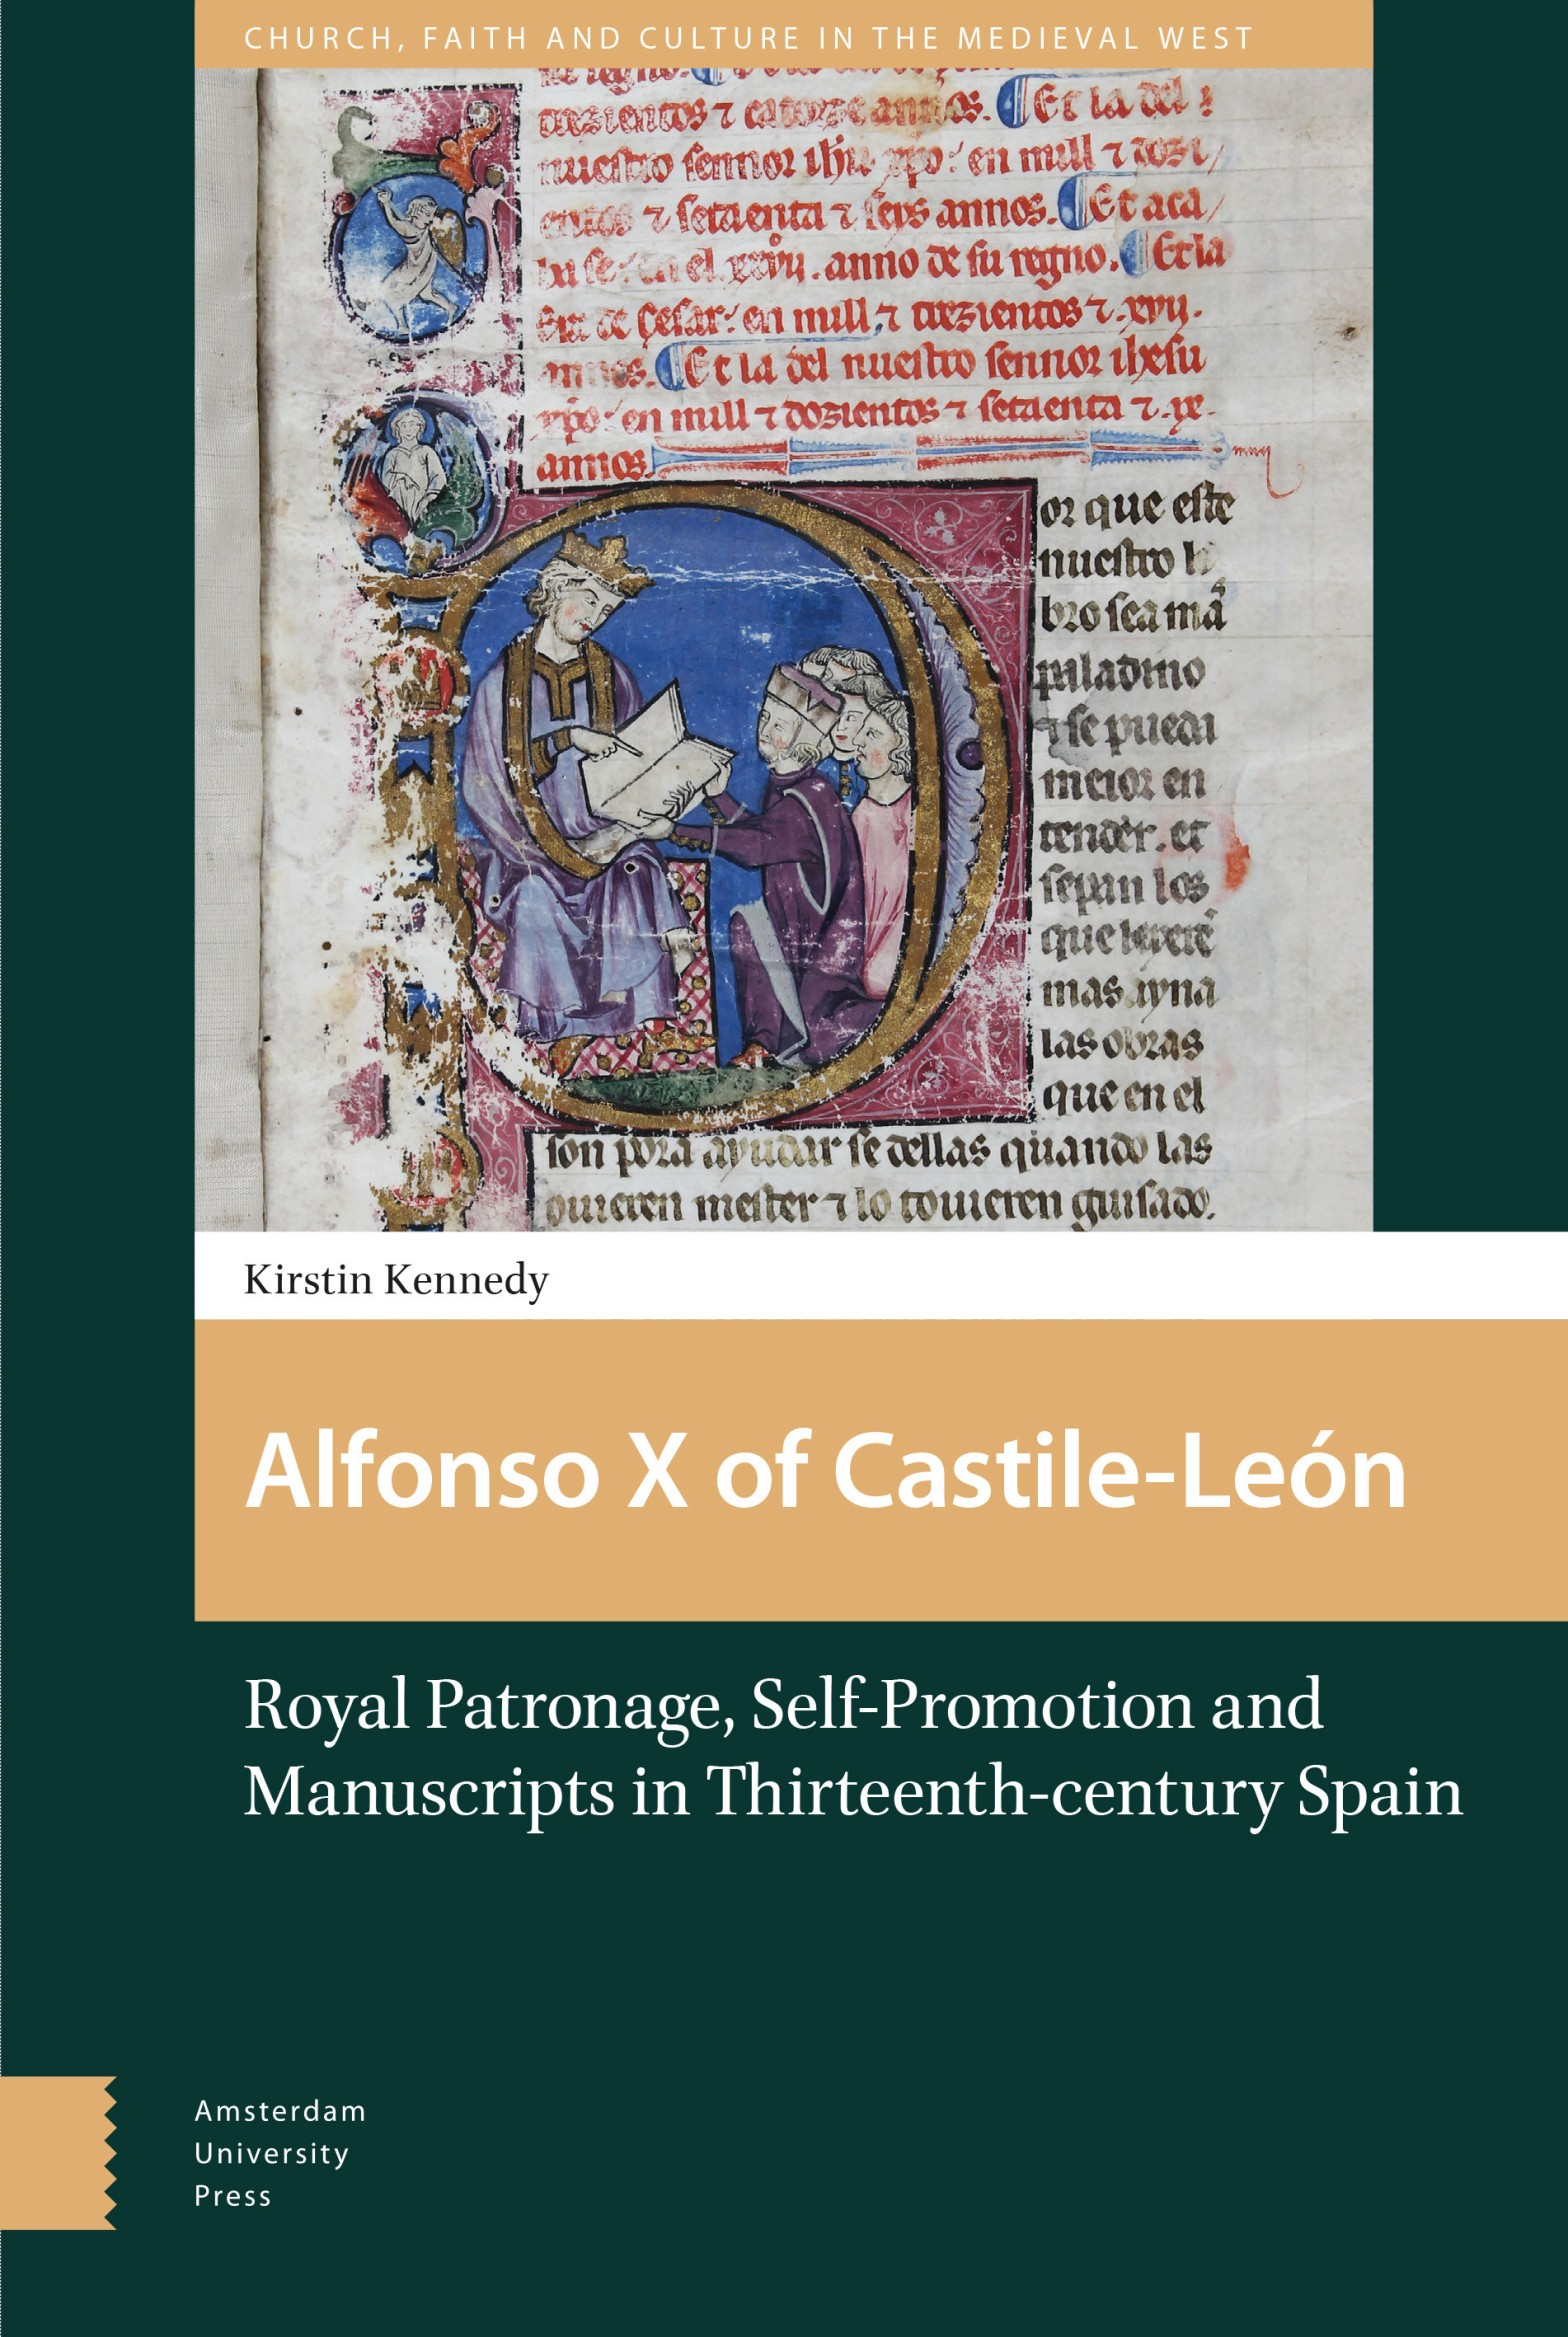 Alfonso X of Castile-León: Royal Patronage, Self-Promotion and Manuscripts in Thirteenth-century Spain, by Kirstin Kennedy